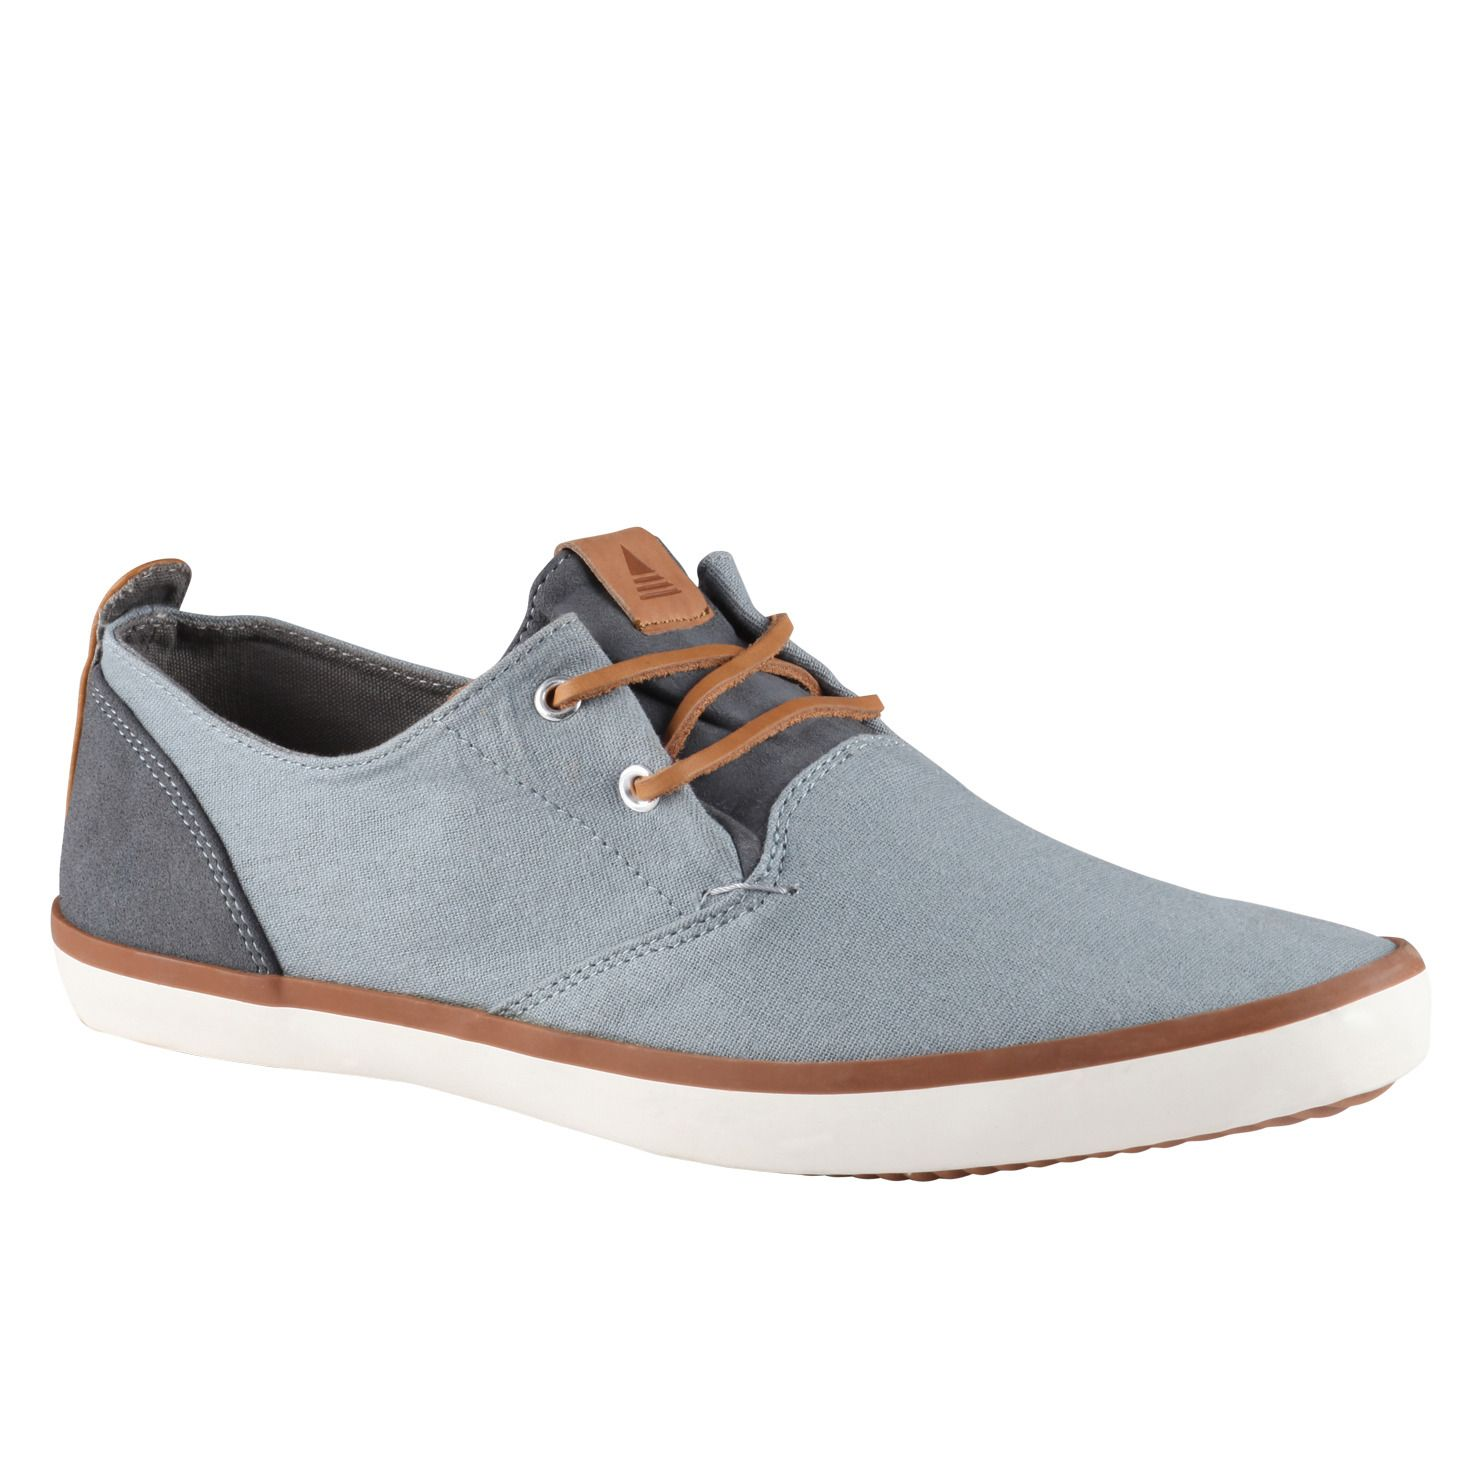 58841e4a0b9a DERWENT - men s sneakers shoes for sale at ALDO Shoes.